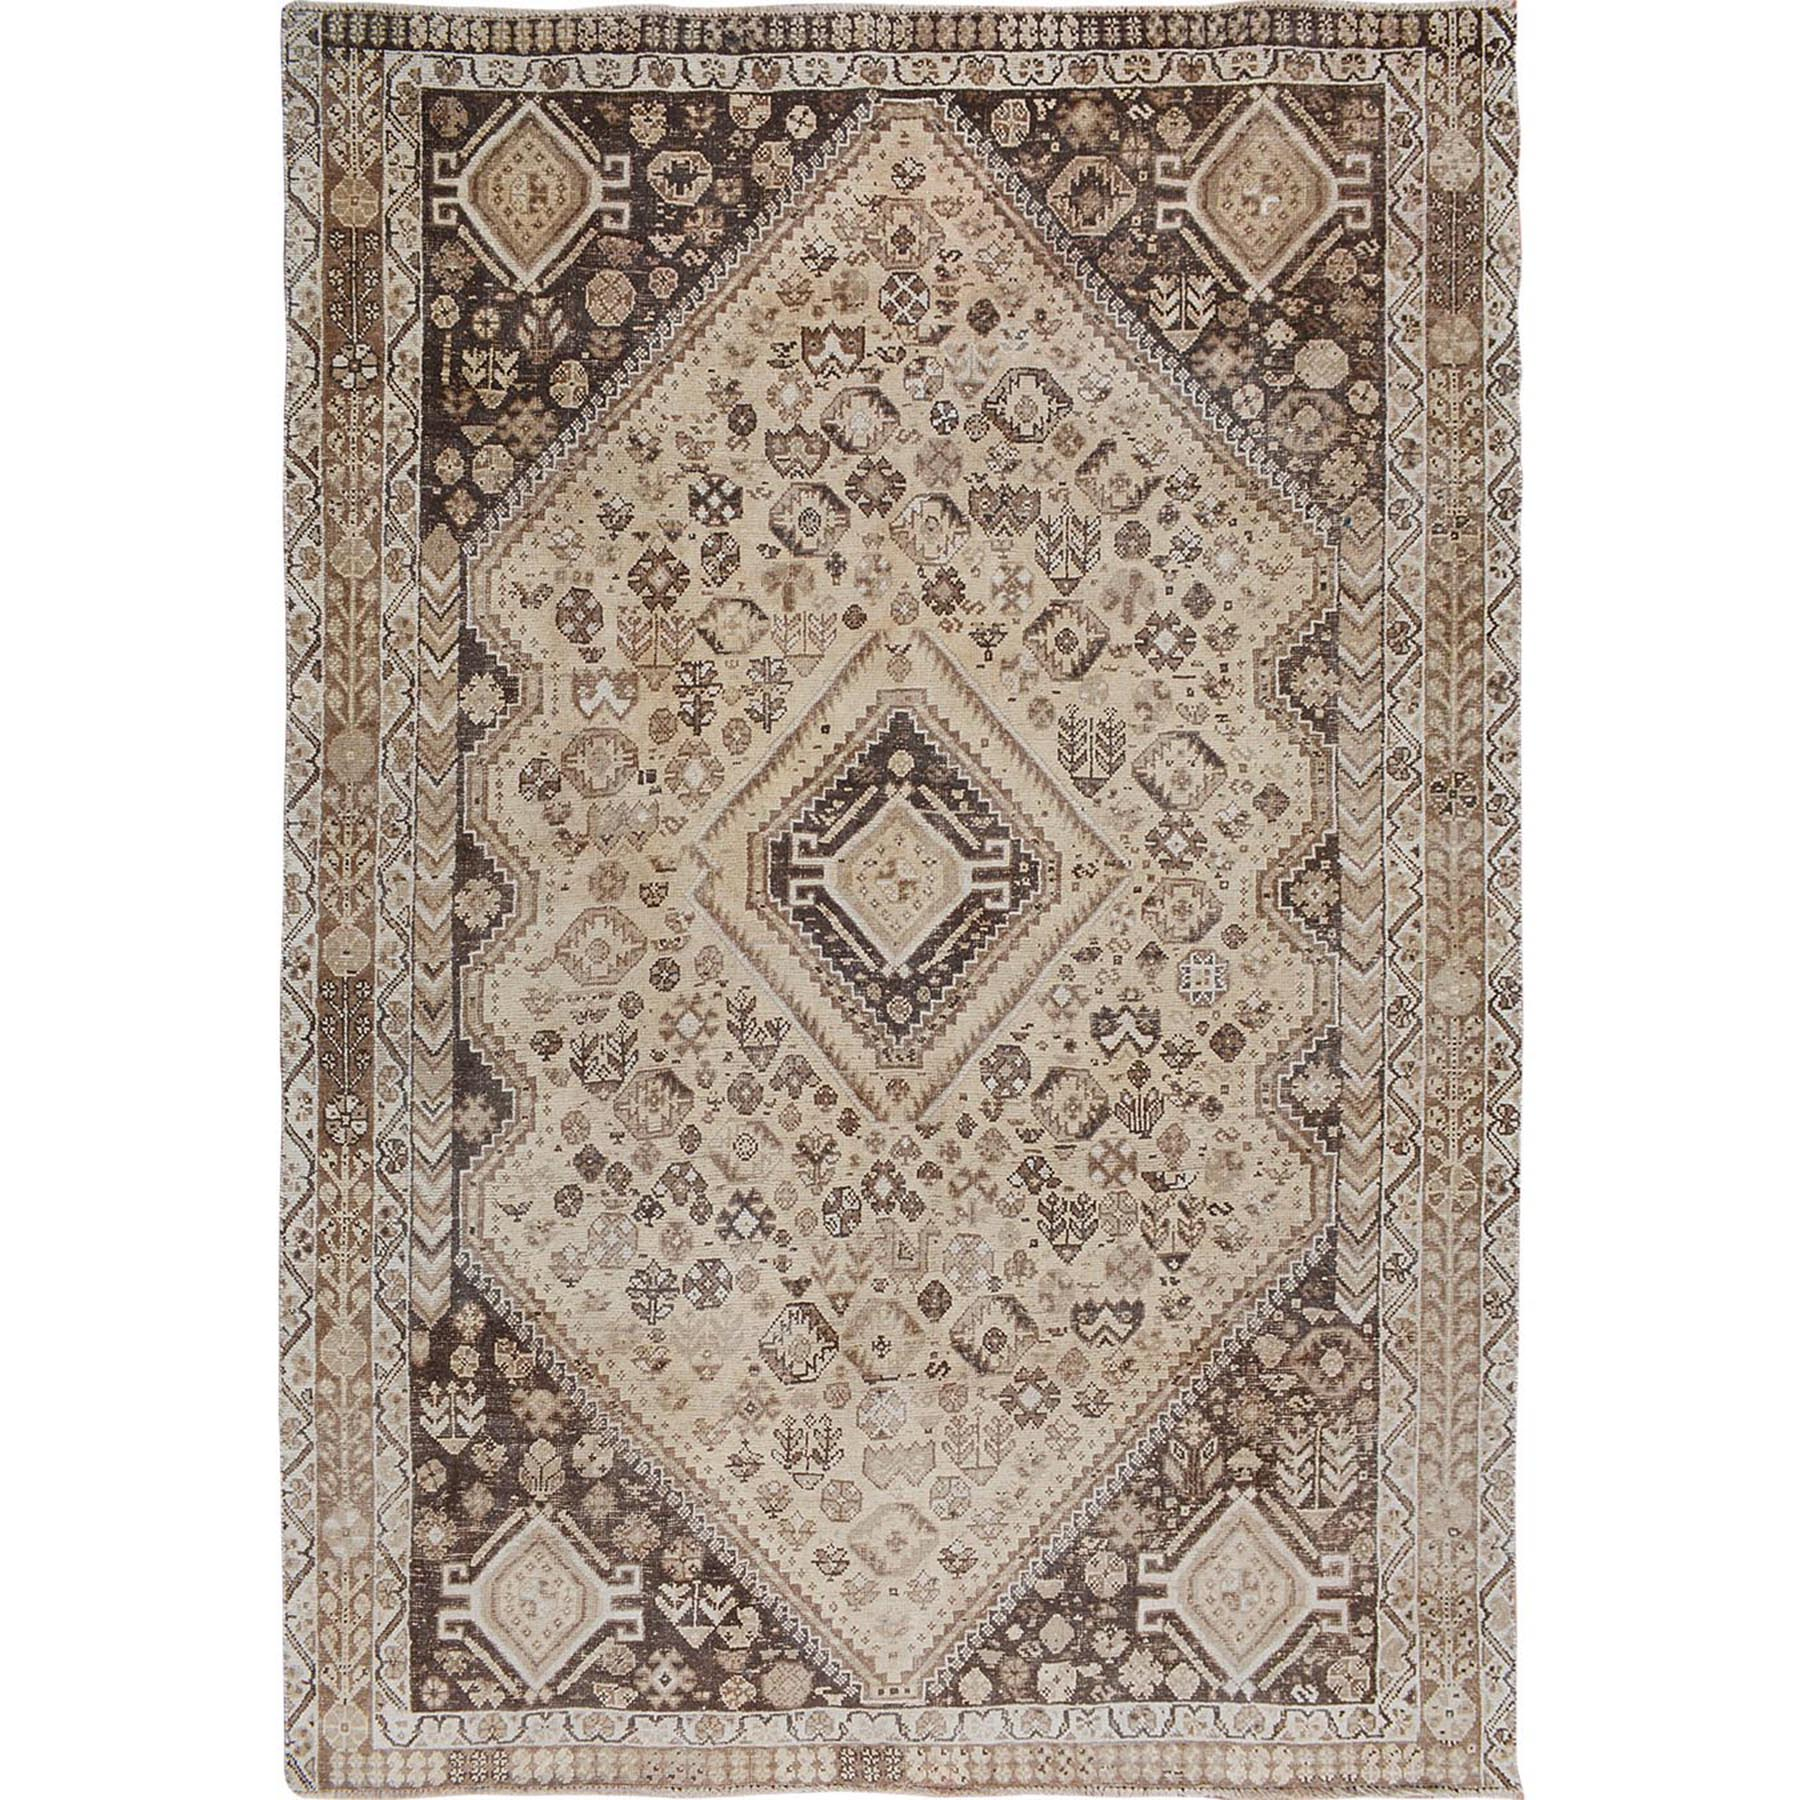 """7'3""""X9'4"""" Natural Colors Faded Vintage Persian Qashqai Worn Down Hand Knotted Oriental Rug moae7be7"""